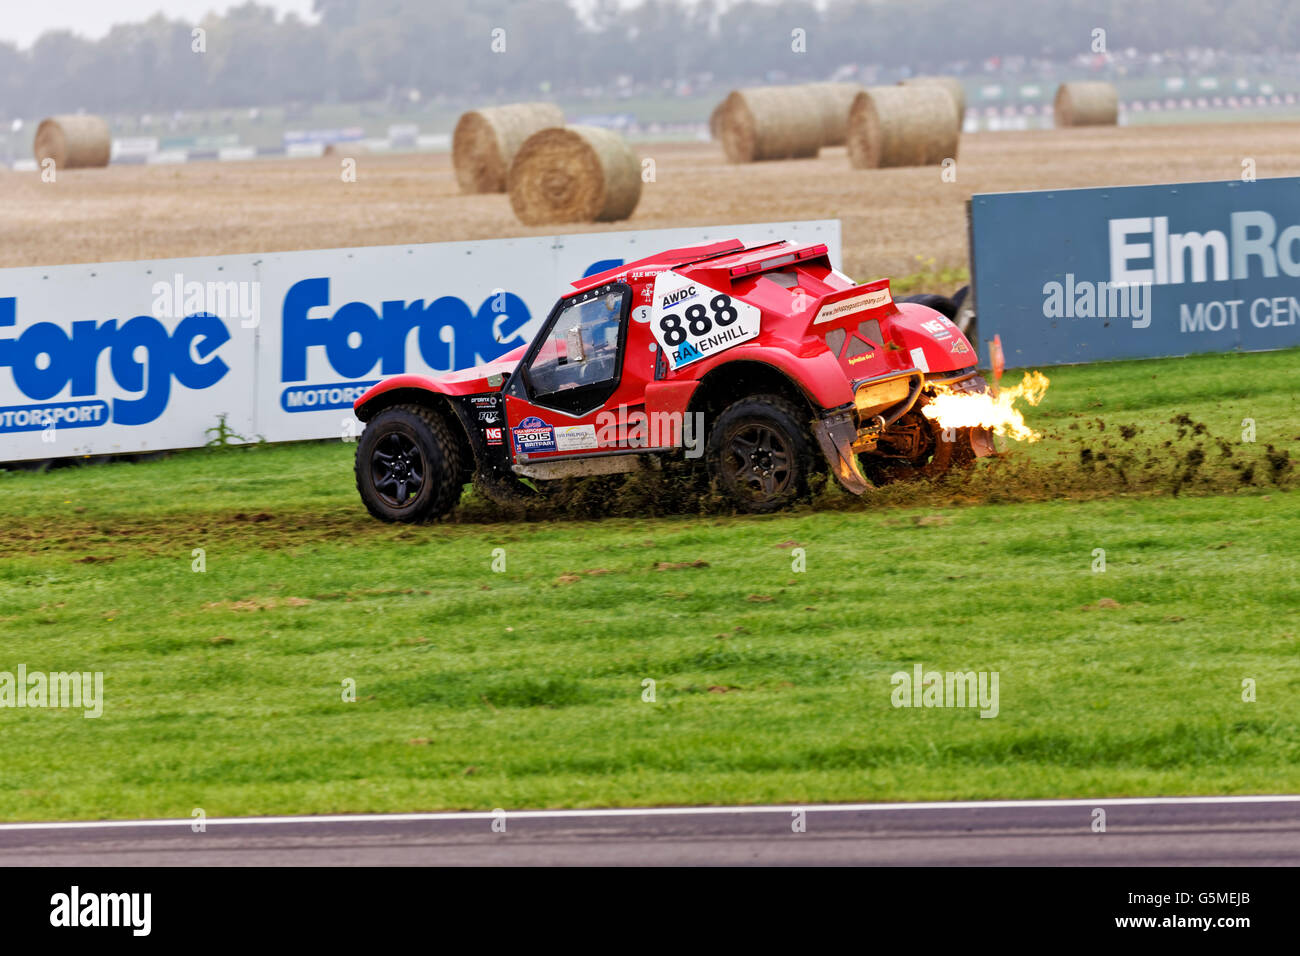 All Wheel Drive Club off-road display at Castle Combe Rallyday 2015. - Stock Image